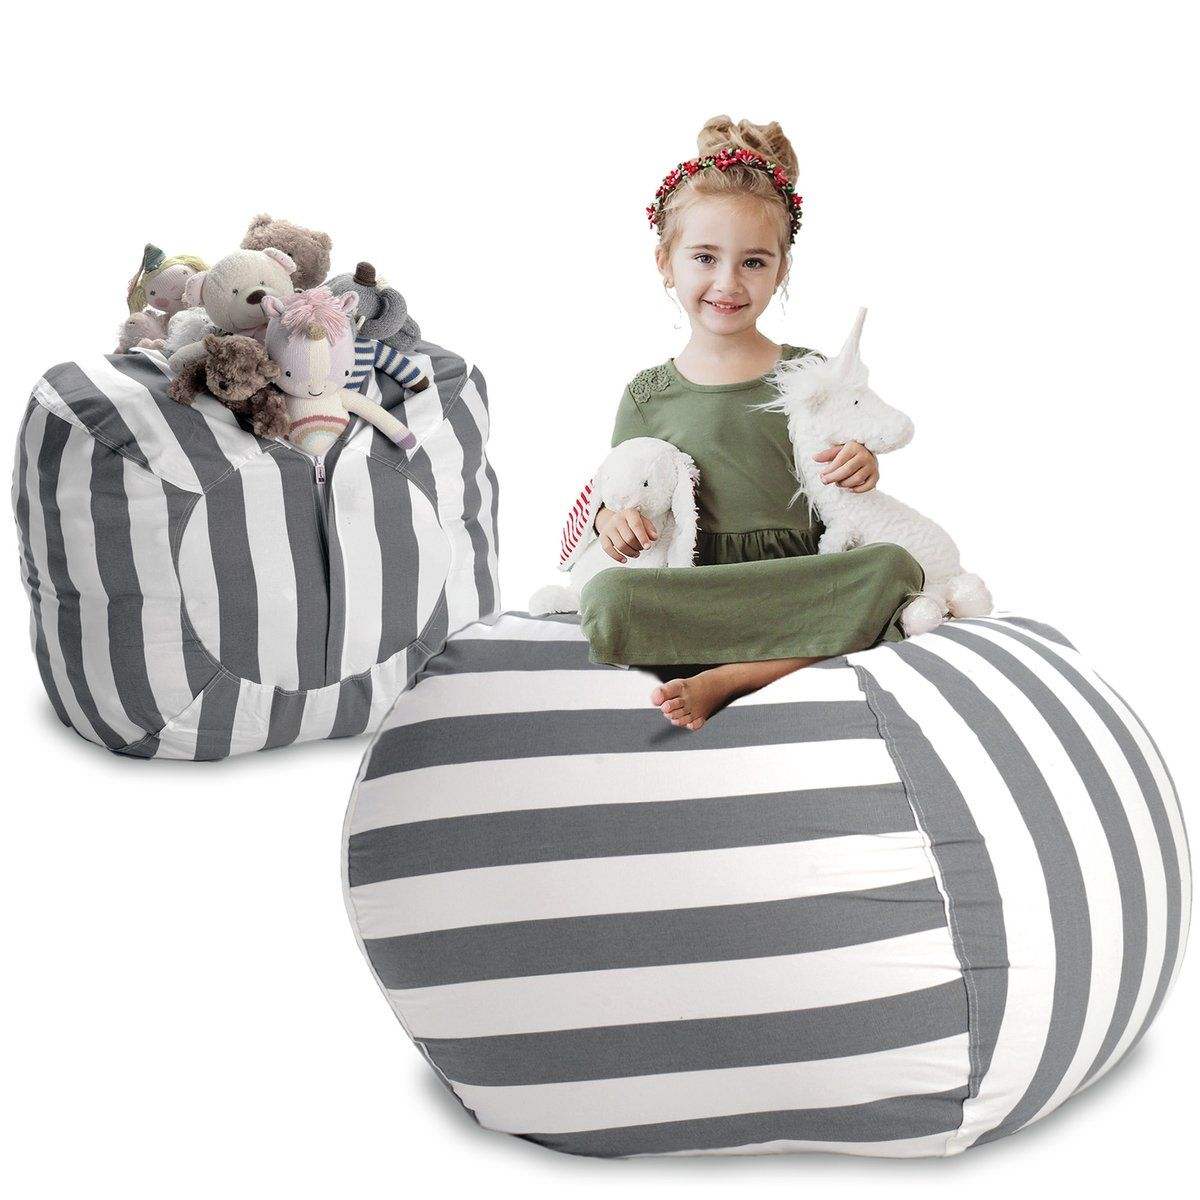 Extra Large Stuff N Sit Available In 10 Patterns Stuffed Animal Storage Bean Bag Chair Kids Toy Organization